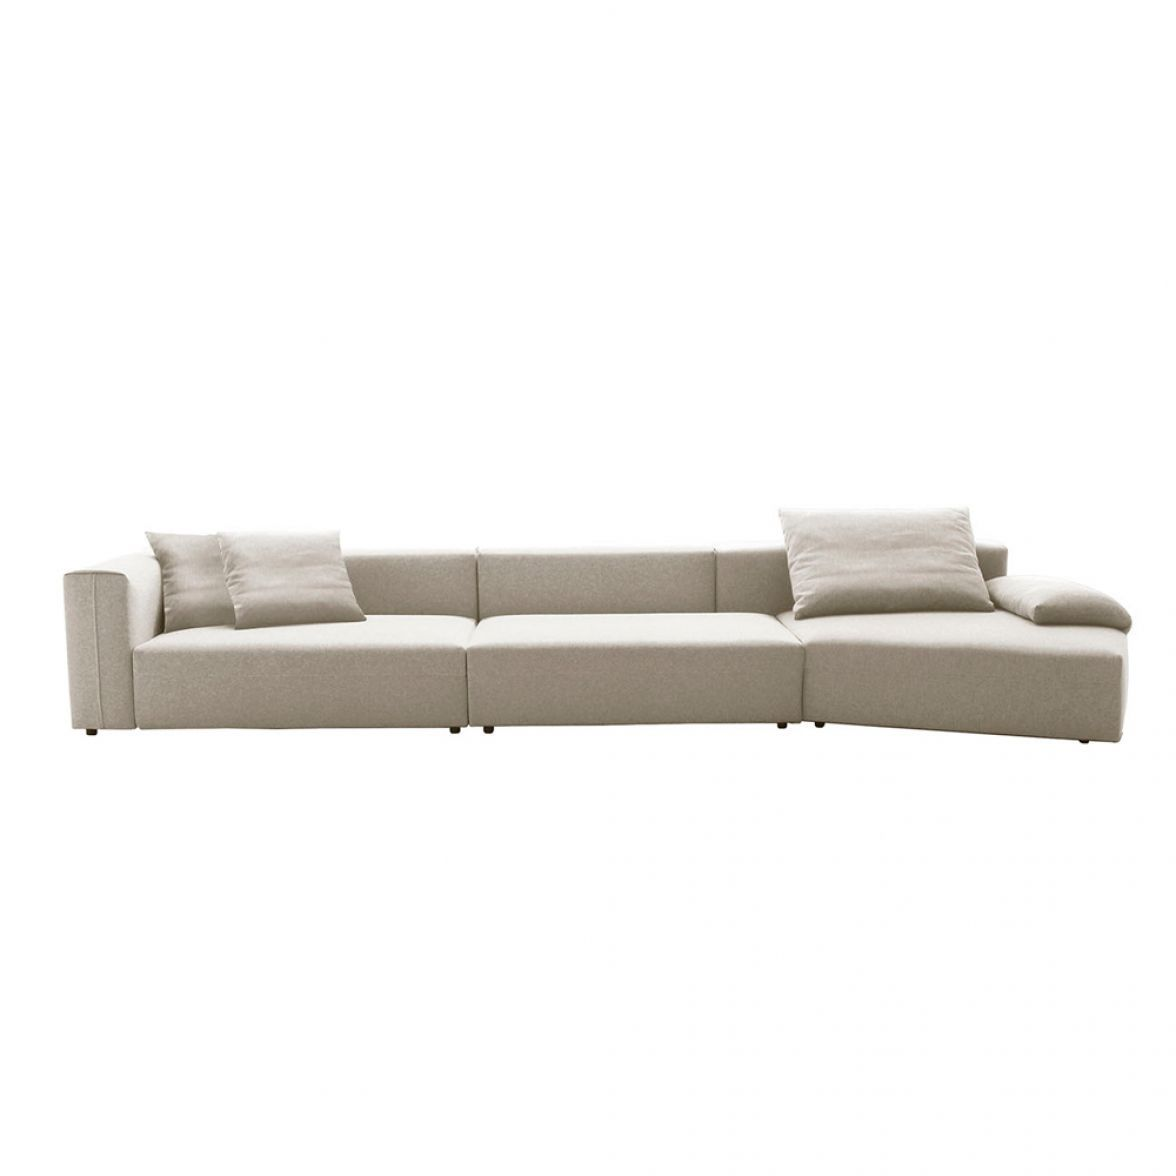 FREESTYLE sofa